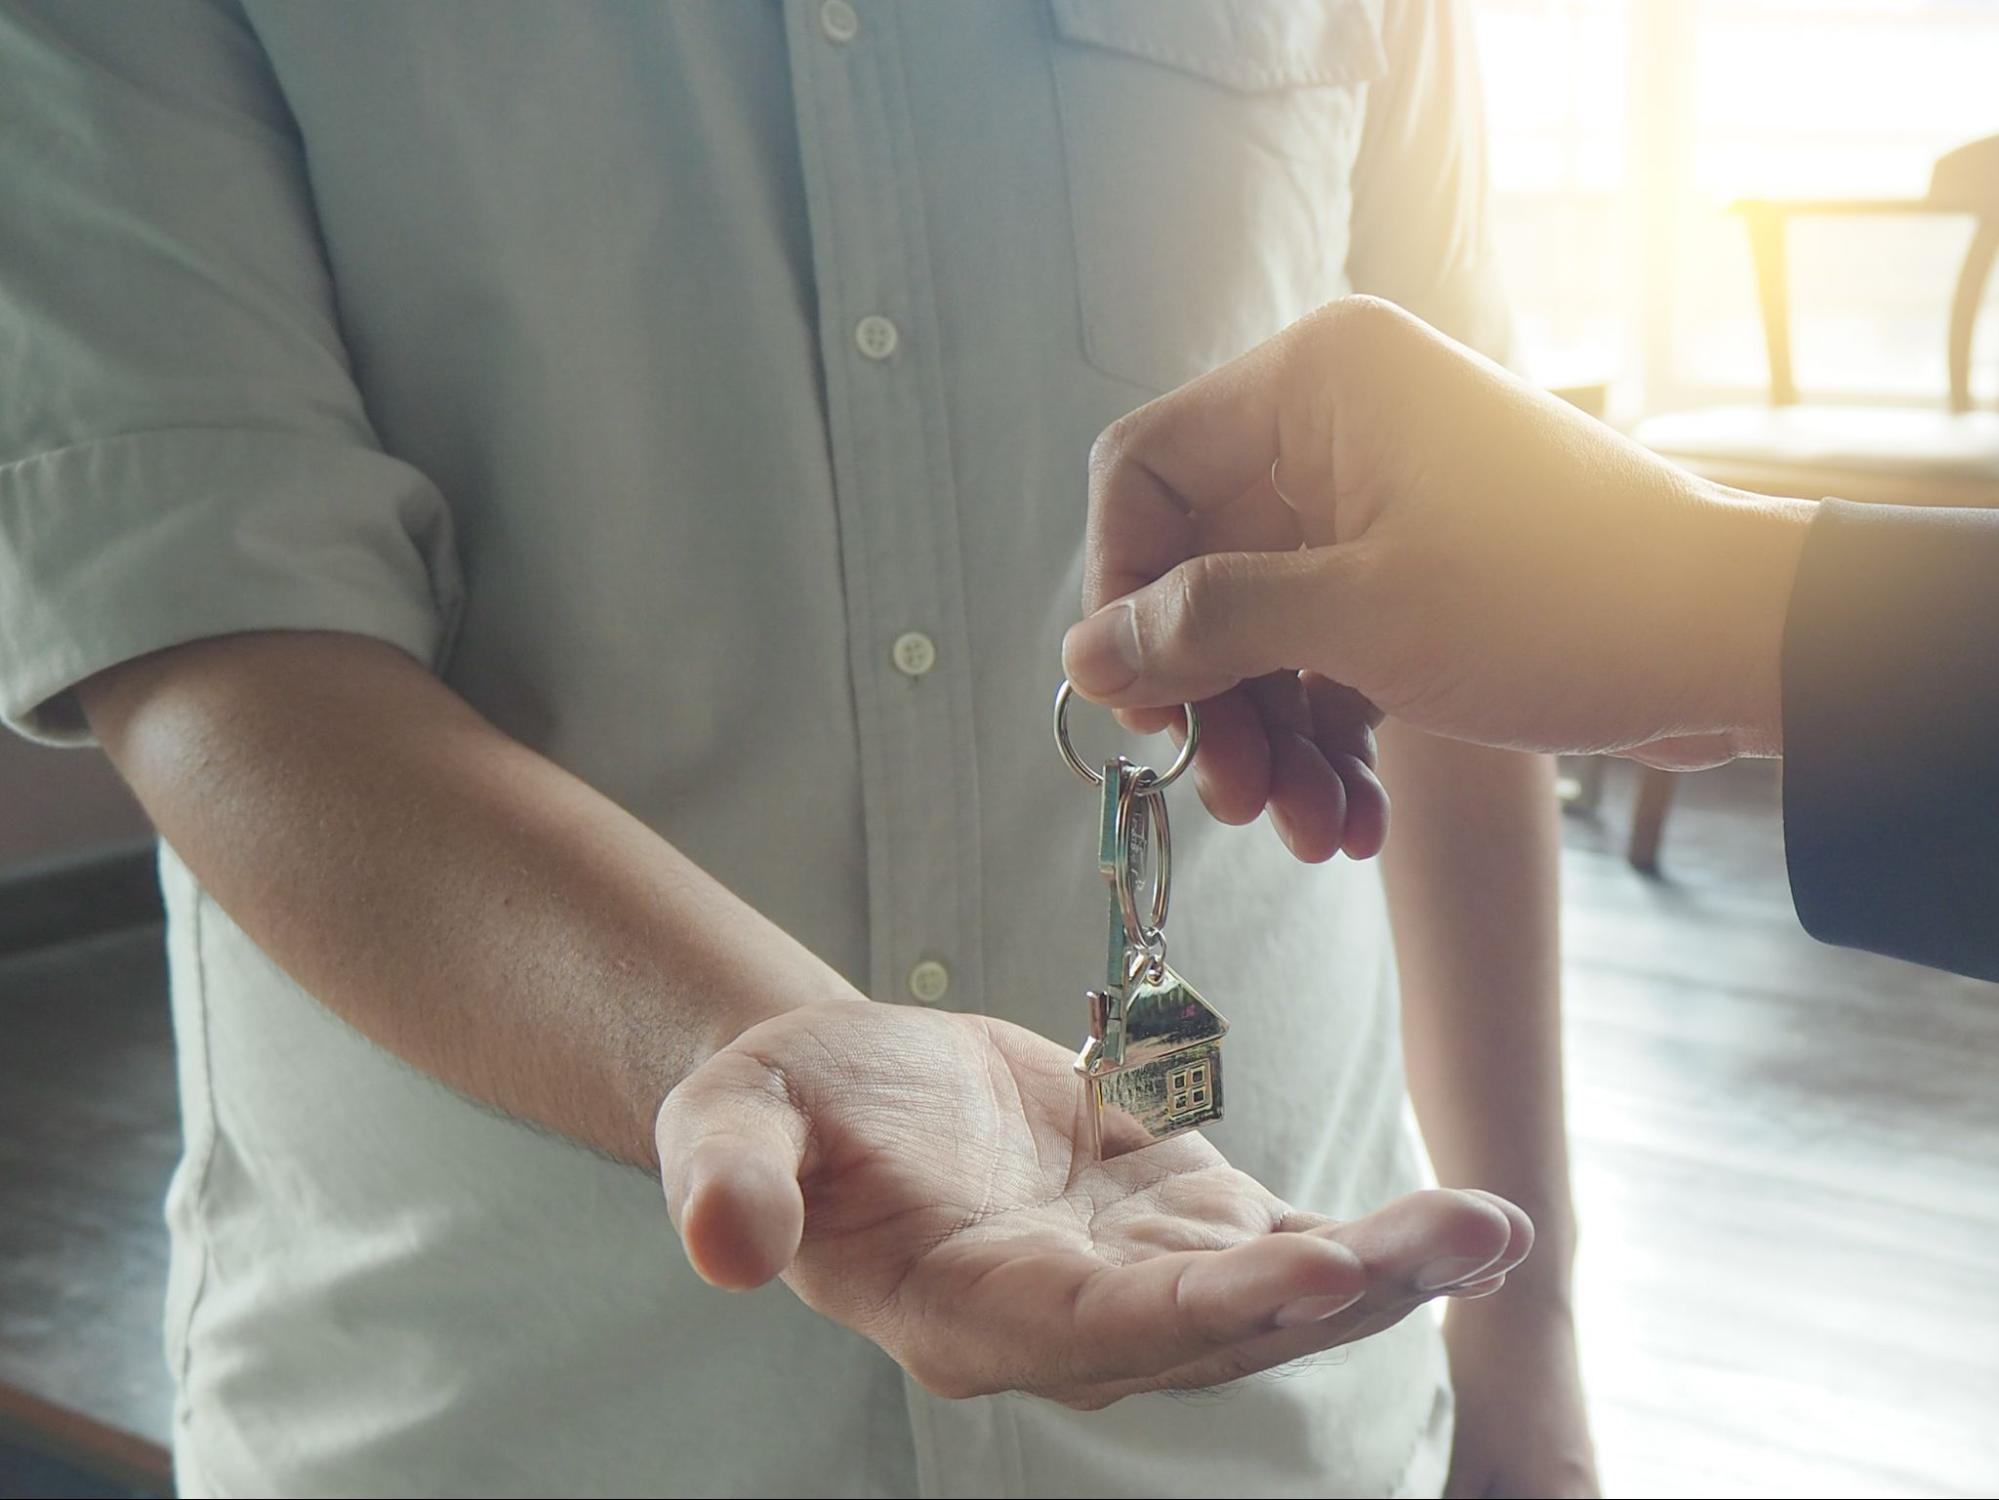 A cropped image of a landlord's hands giving keys to the tenant